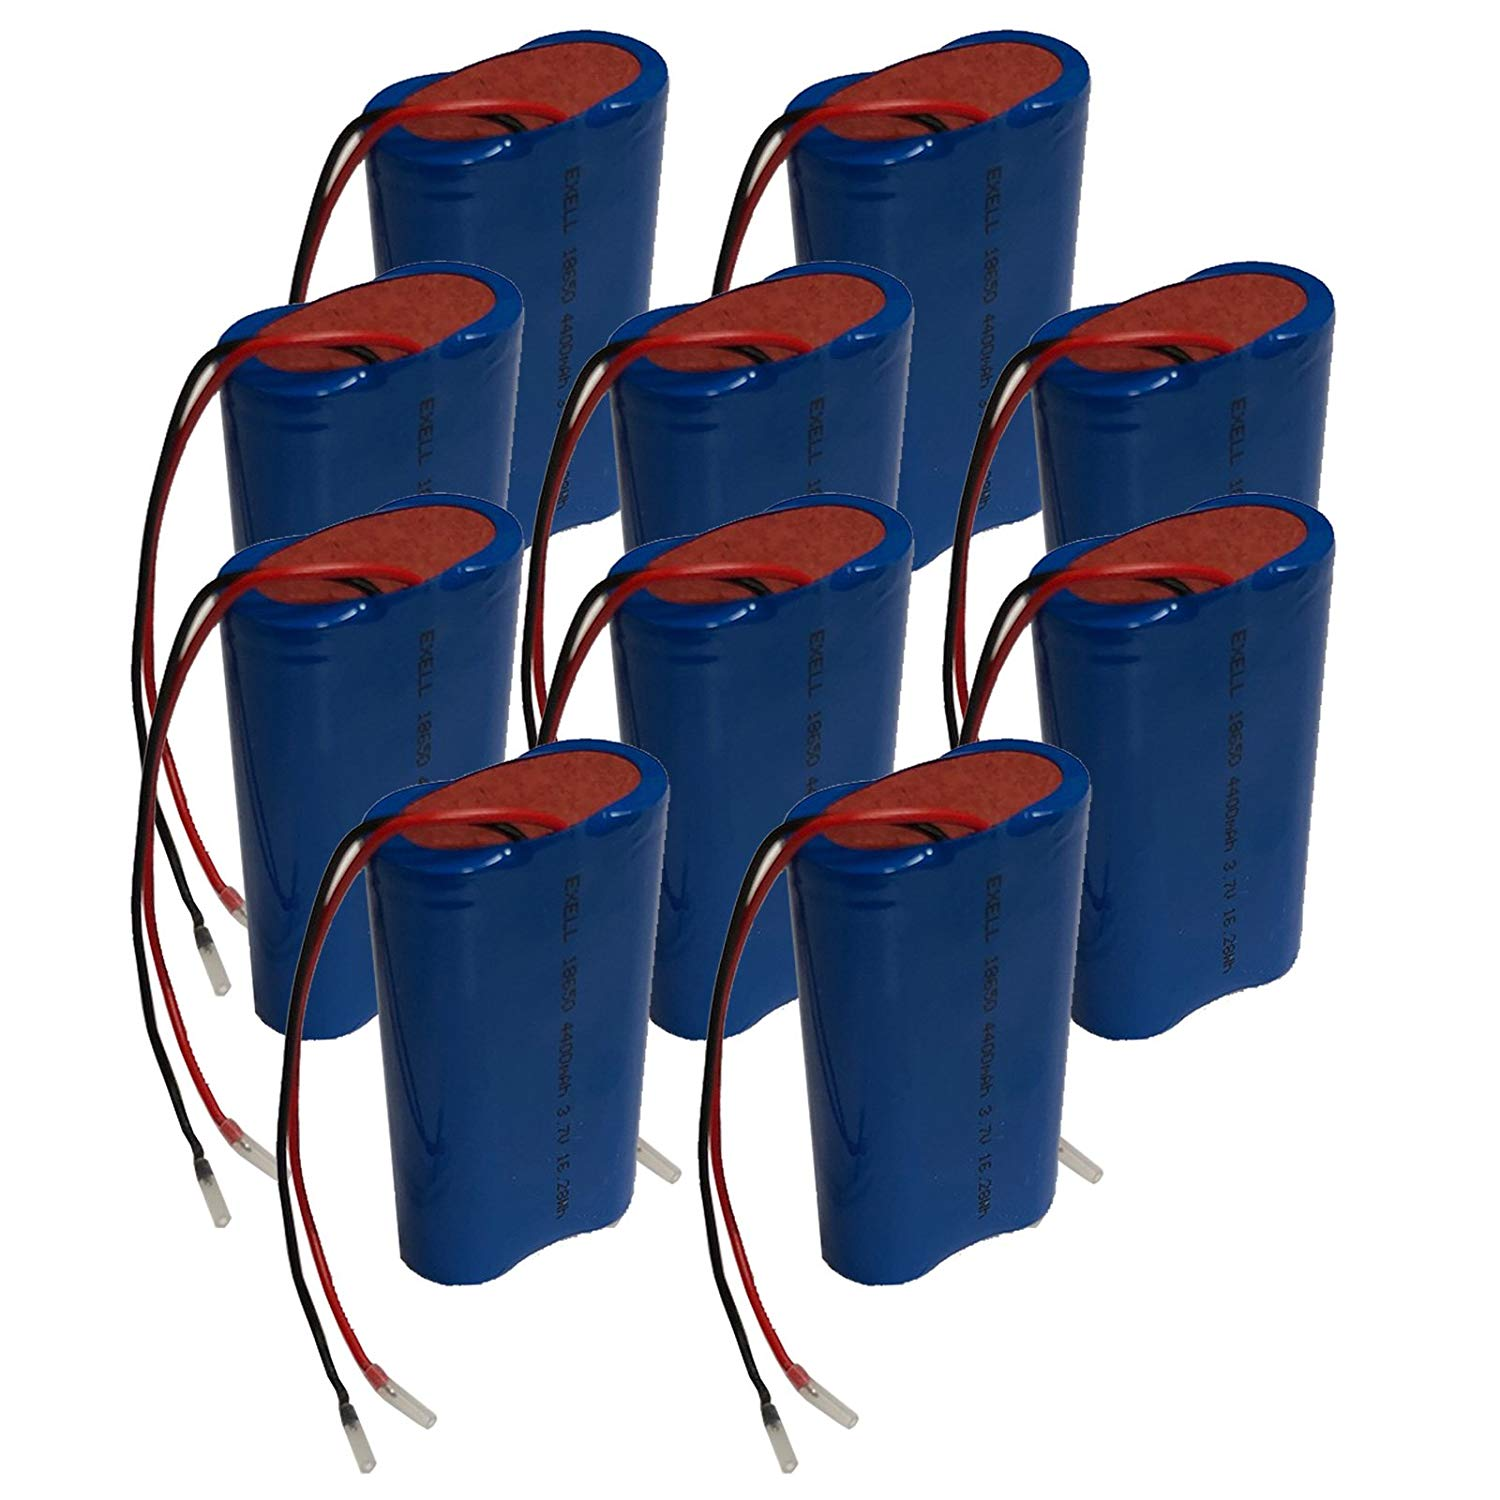 10x Exell 3.7V 4400mAh Li-Ion 2200mAh Battery Pack with 4in bare wire leads